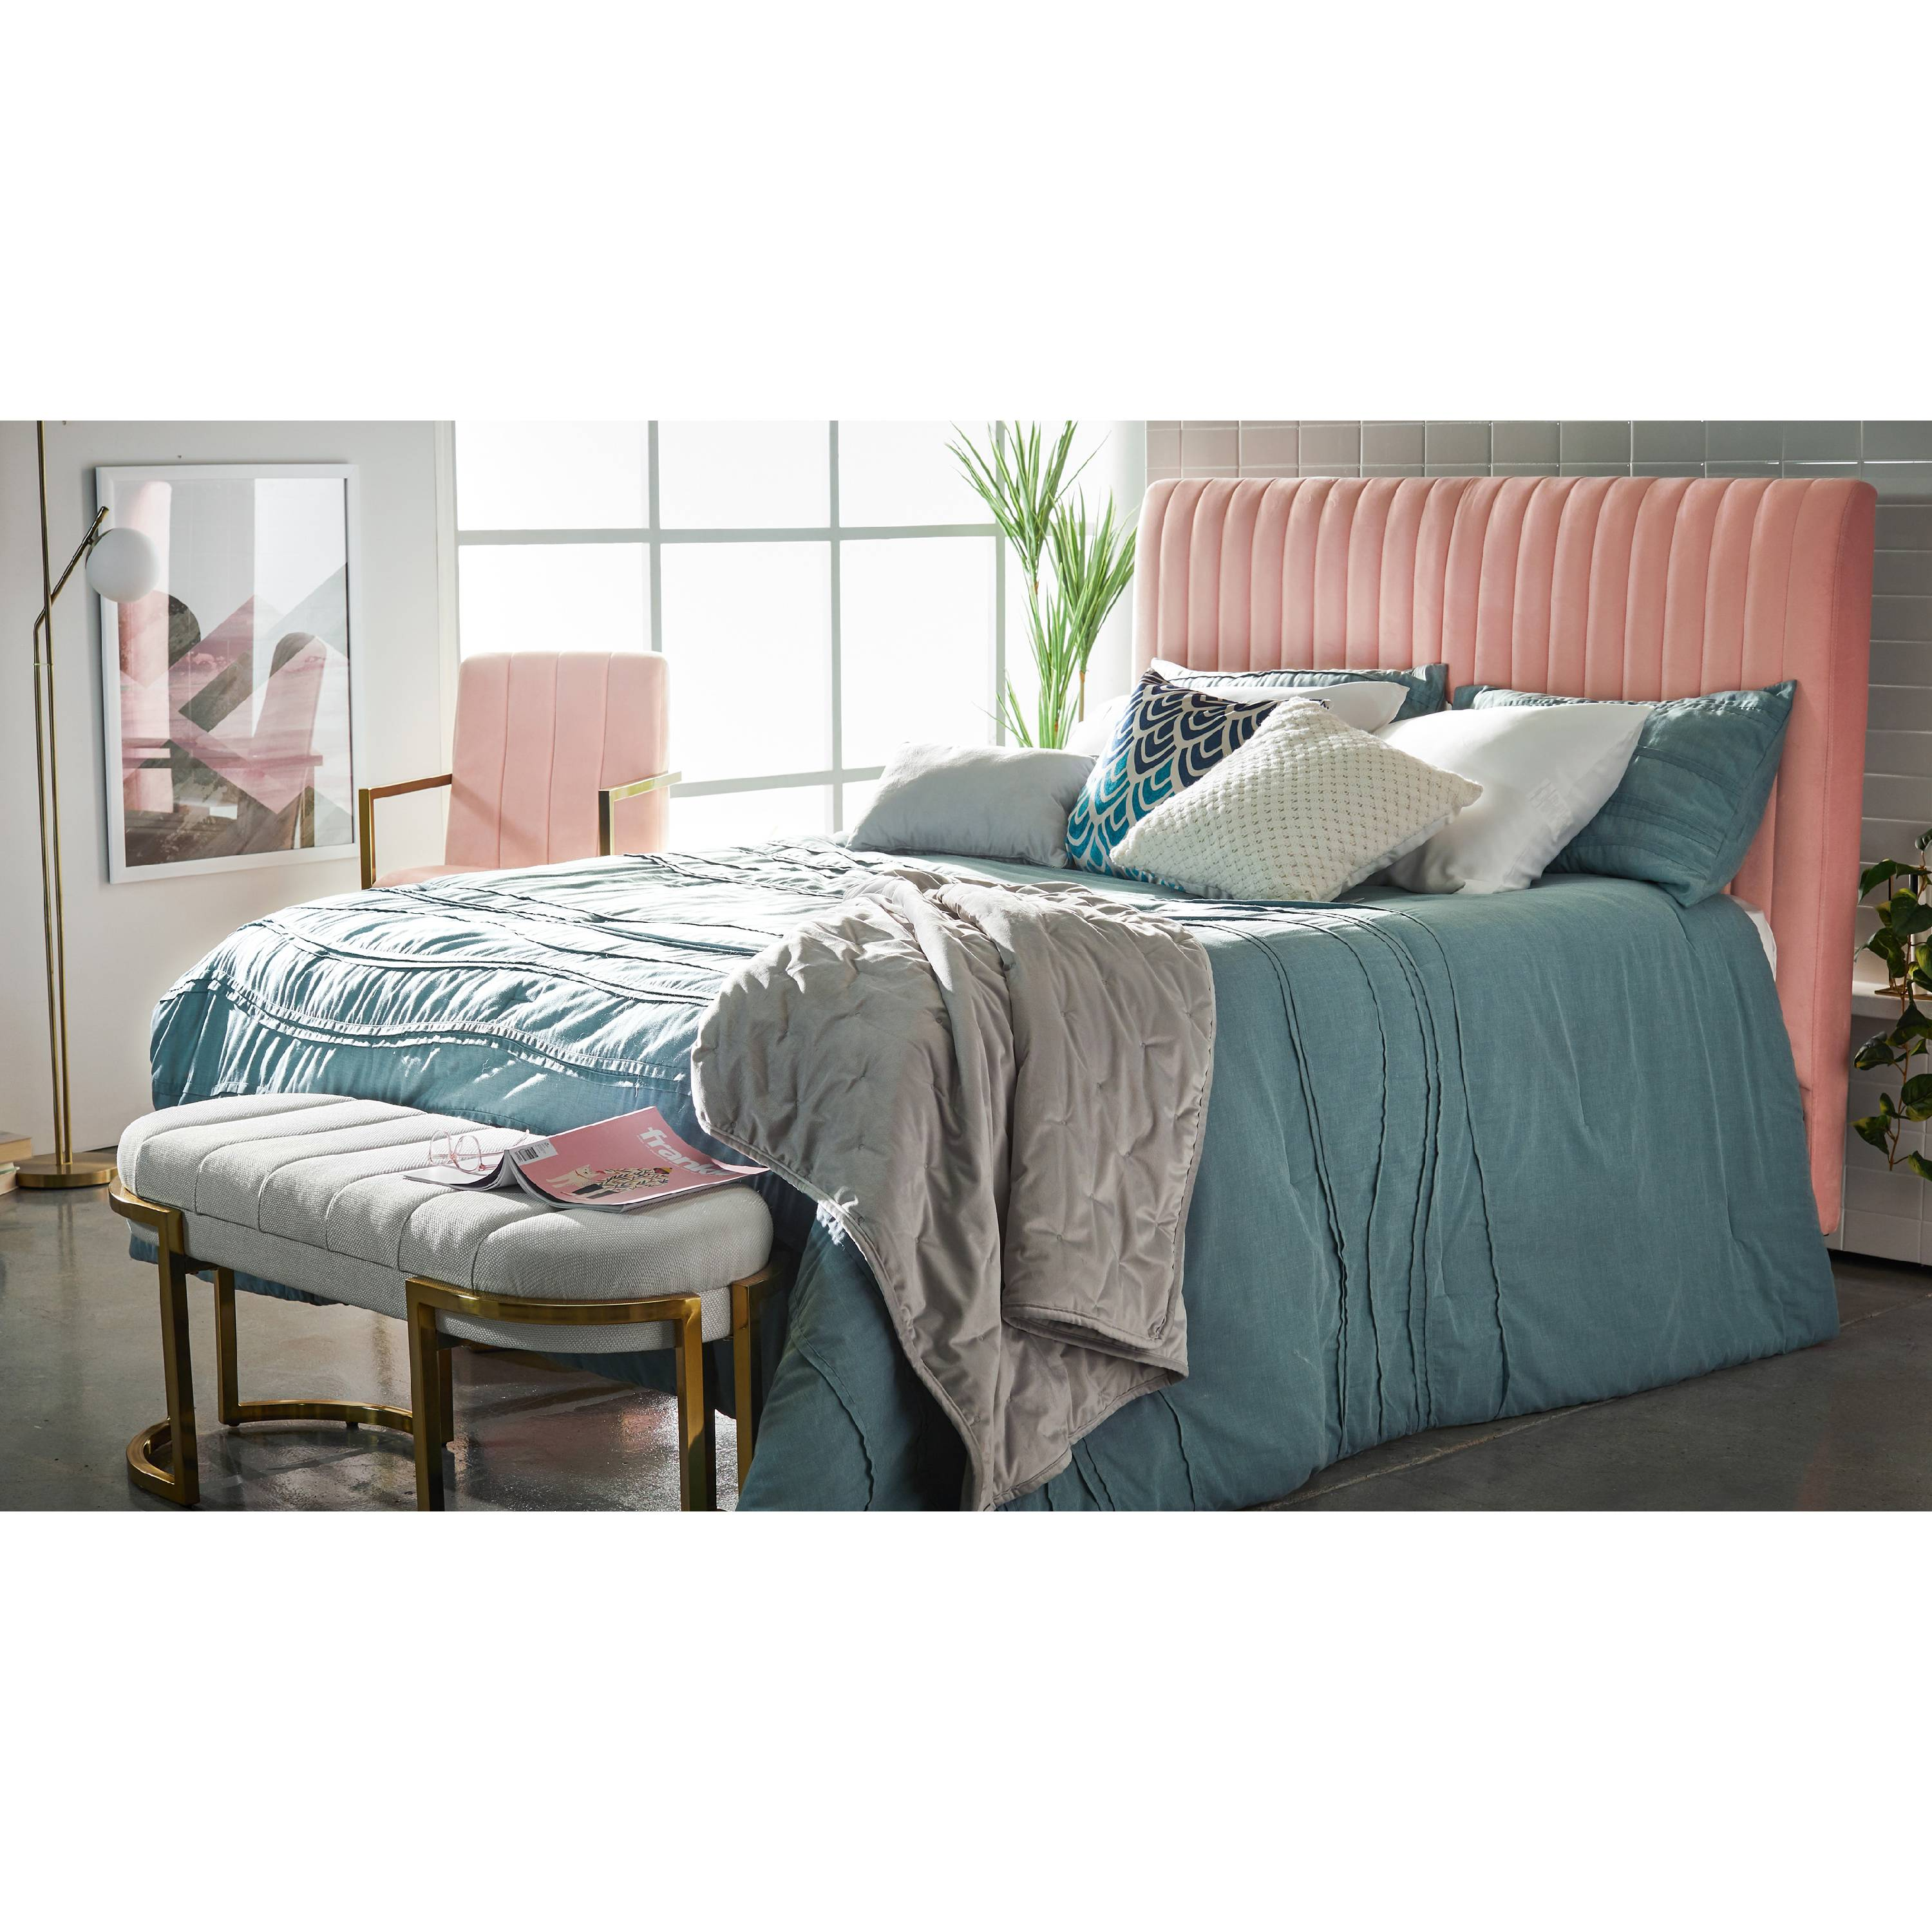 MoDRN Glam 5 Piece Voile Wave Comforter Set